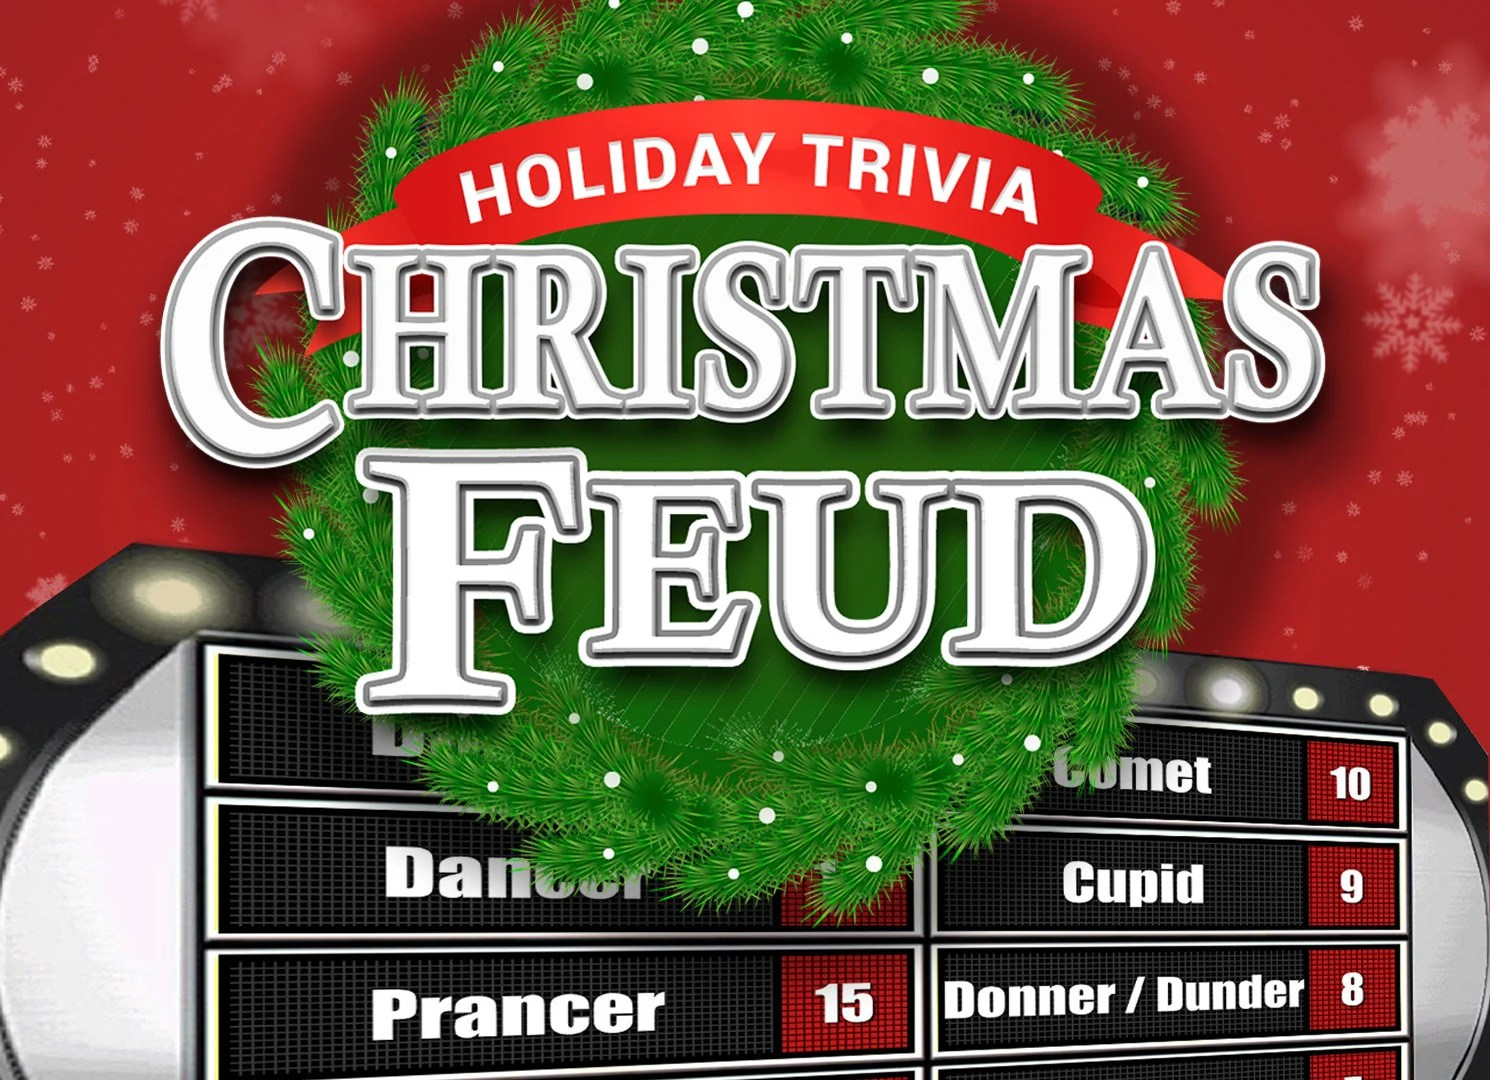 Christmas Feud with Scoreboard Family Feud Trivia Powerpoint Etsy